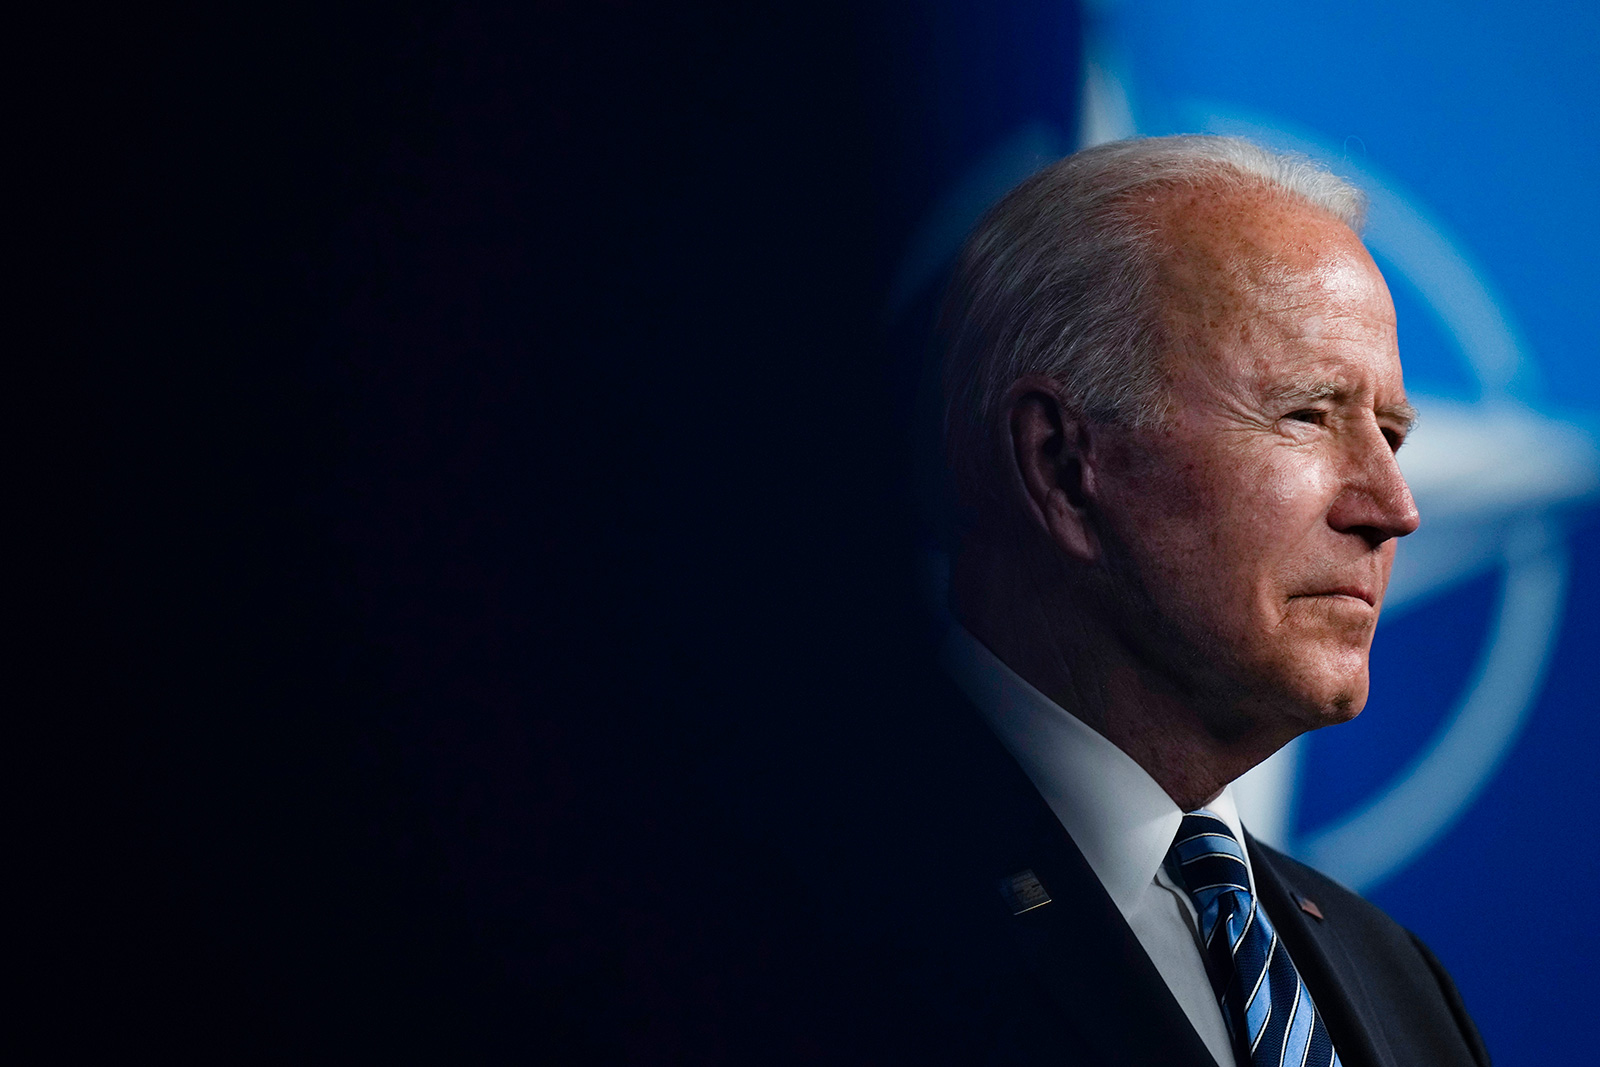 U.S. President Joe Biden speaks during a media conference at a NATO summit in Brussels on Monday, June 14.